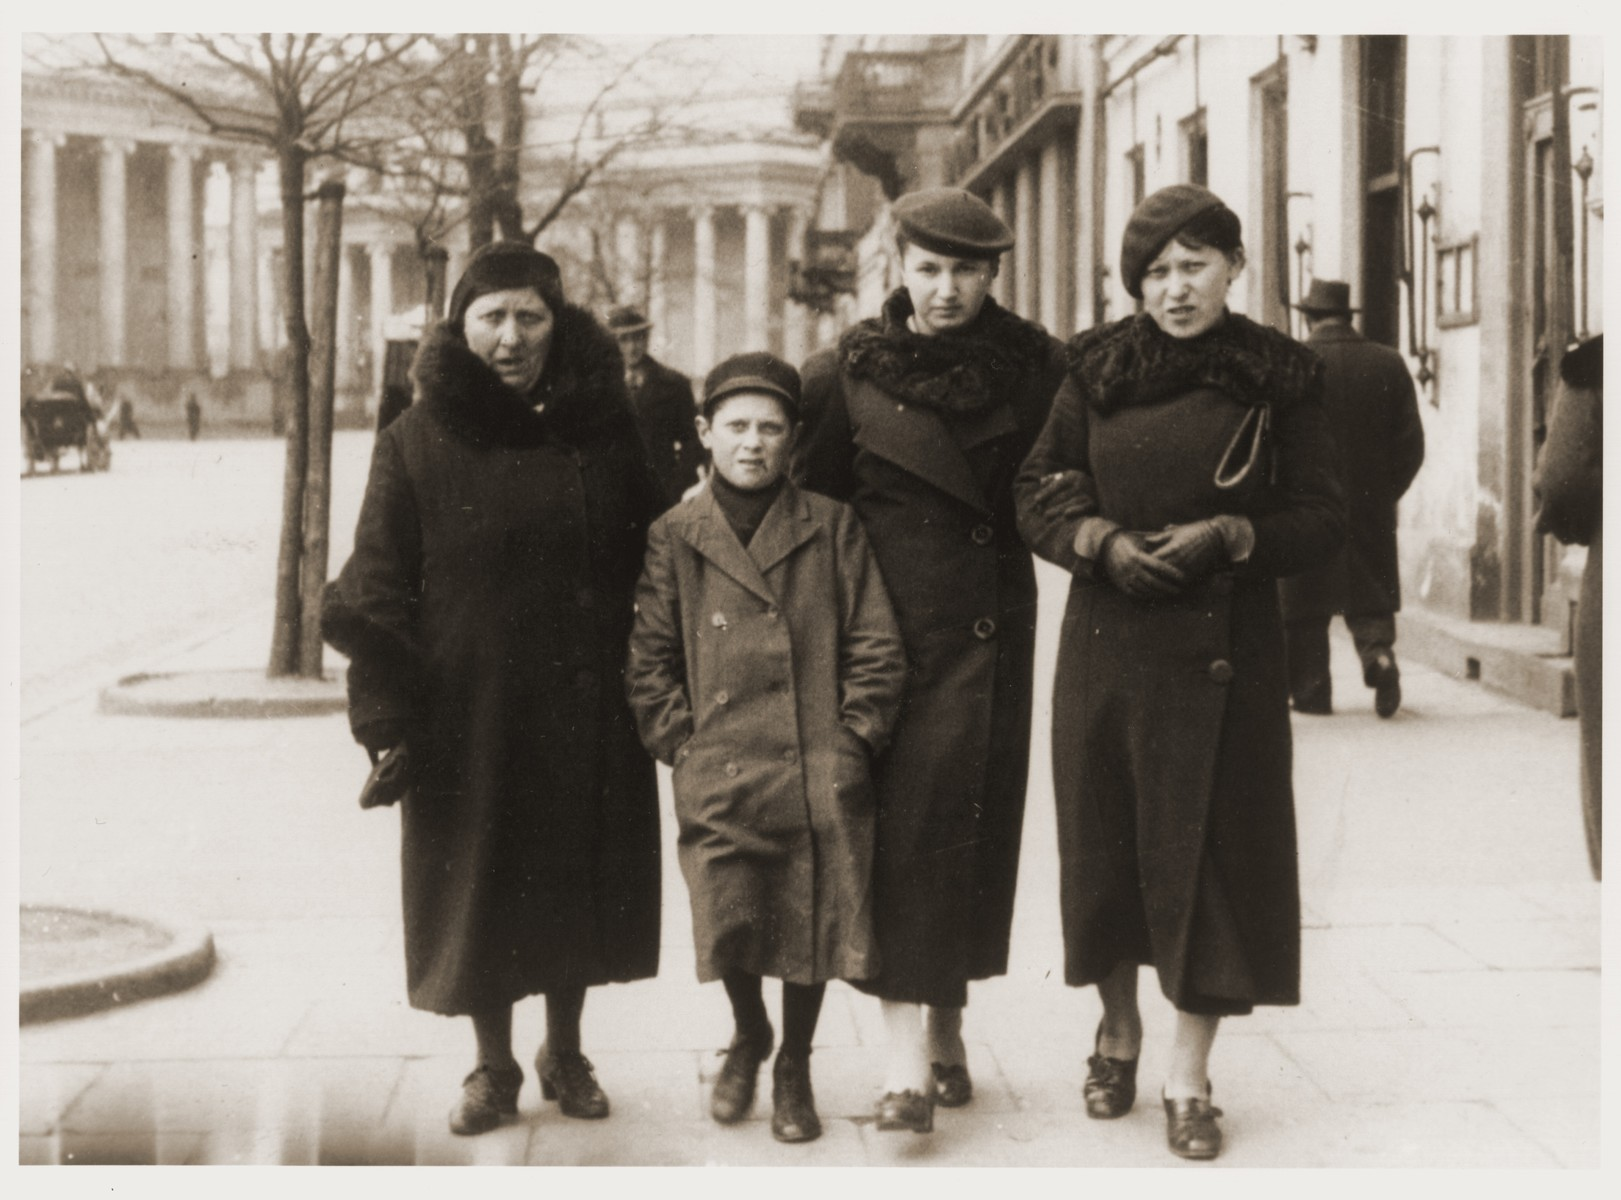 Members of the Tenenbaum family walk along the streets of Warsaw.  Pictured from left to right are Anka Leah, Szmuel, a cousin, and Nechama Tenenbaum.